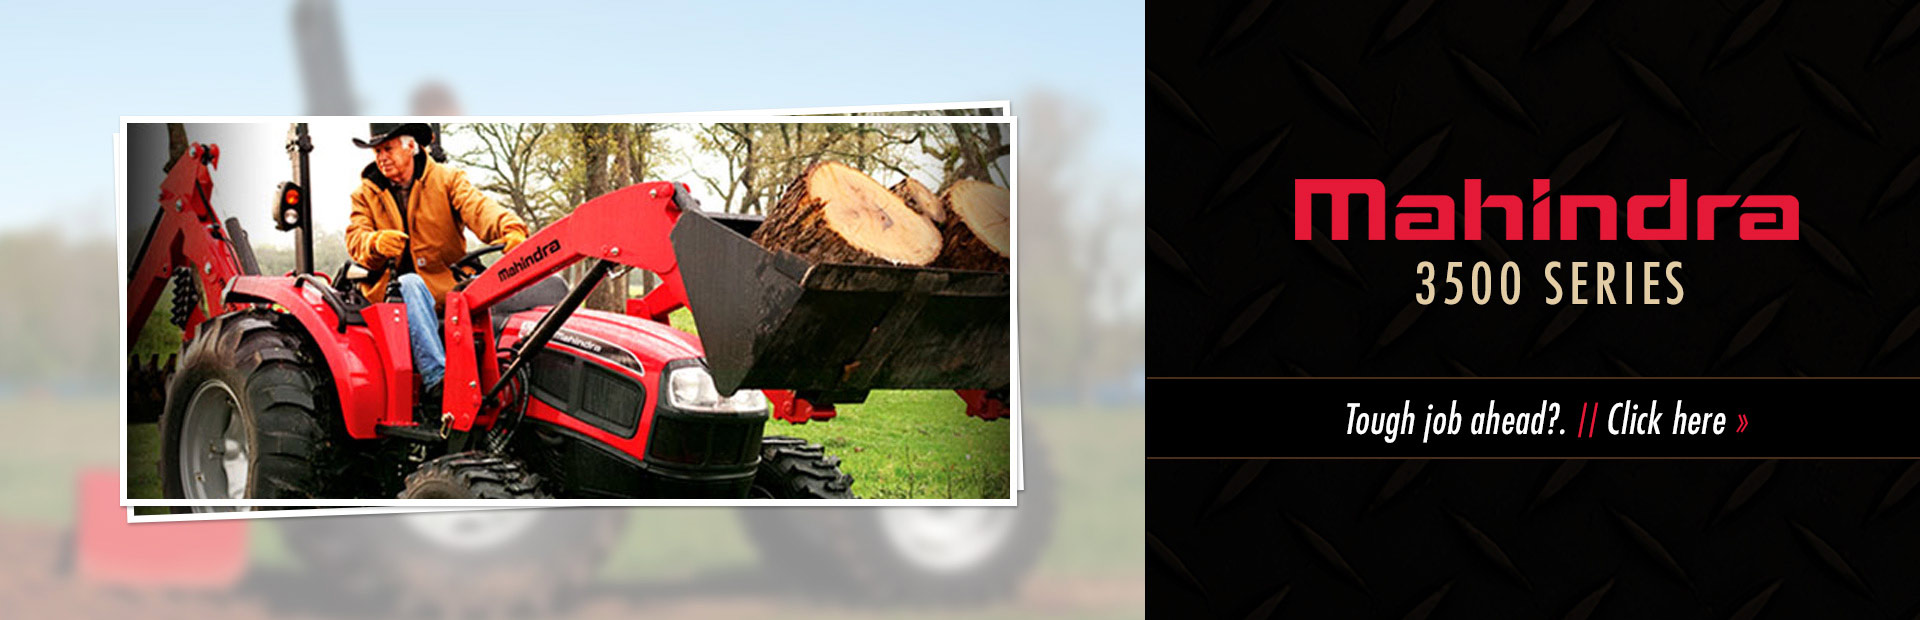 Click here to view our selection of Mahindra 3500 series tractors!